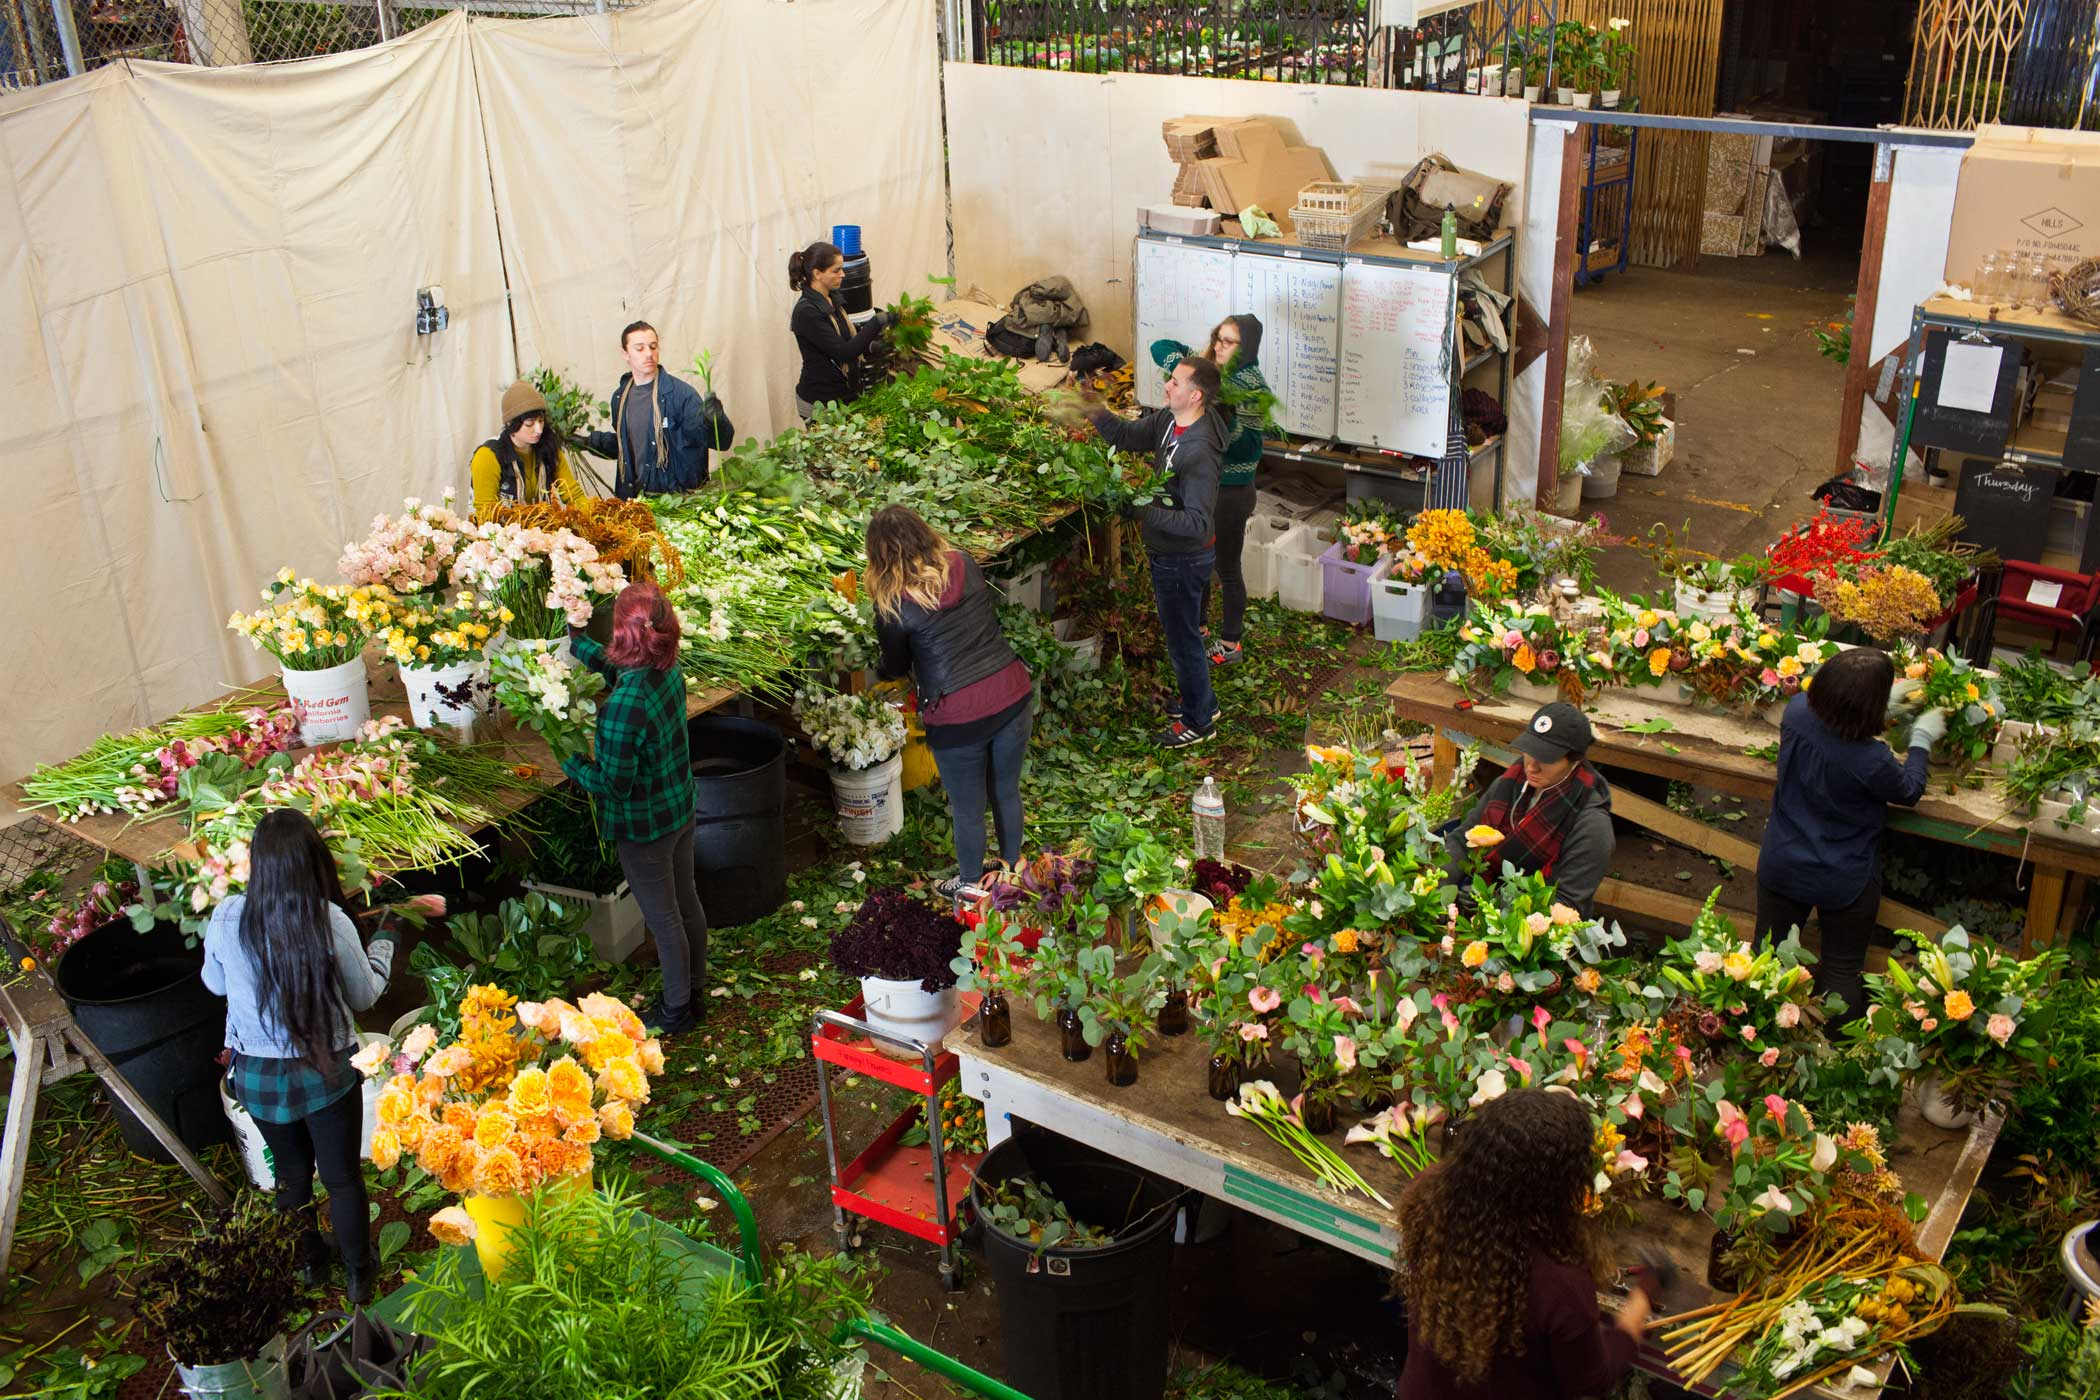 Employees sort flowers into bouquets at Farmgirl Flowers in the SF Flower Mart in San Francisco on Nov. 10, 2015.